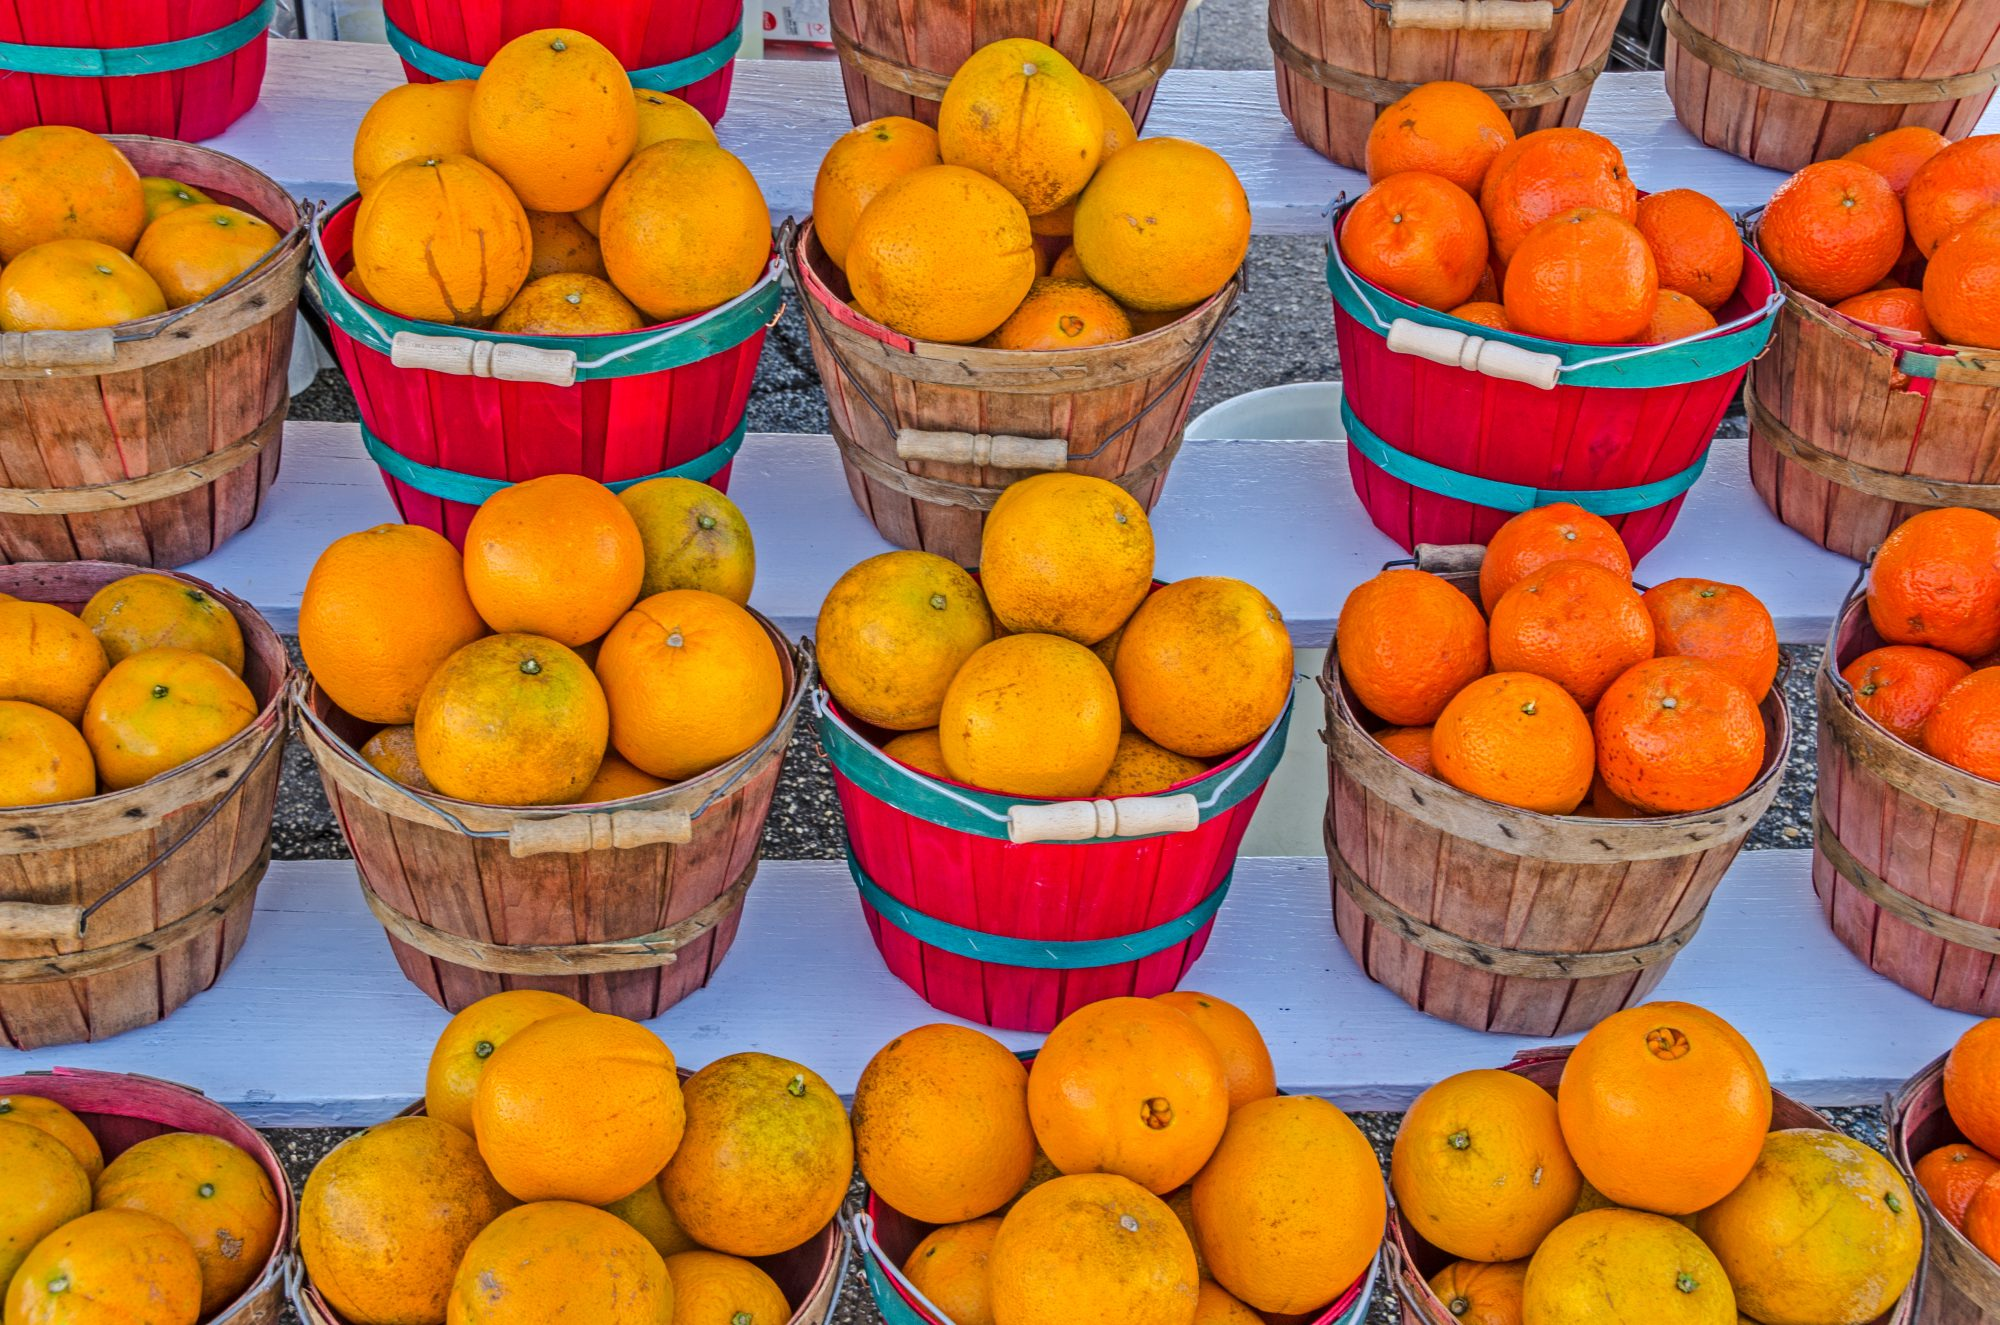 Basket of Honeybell Oranges